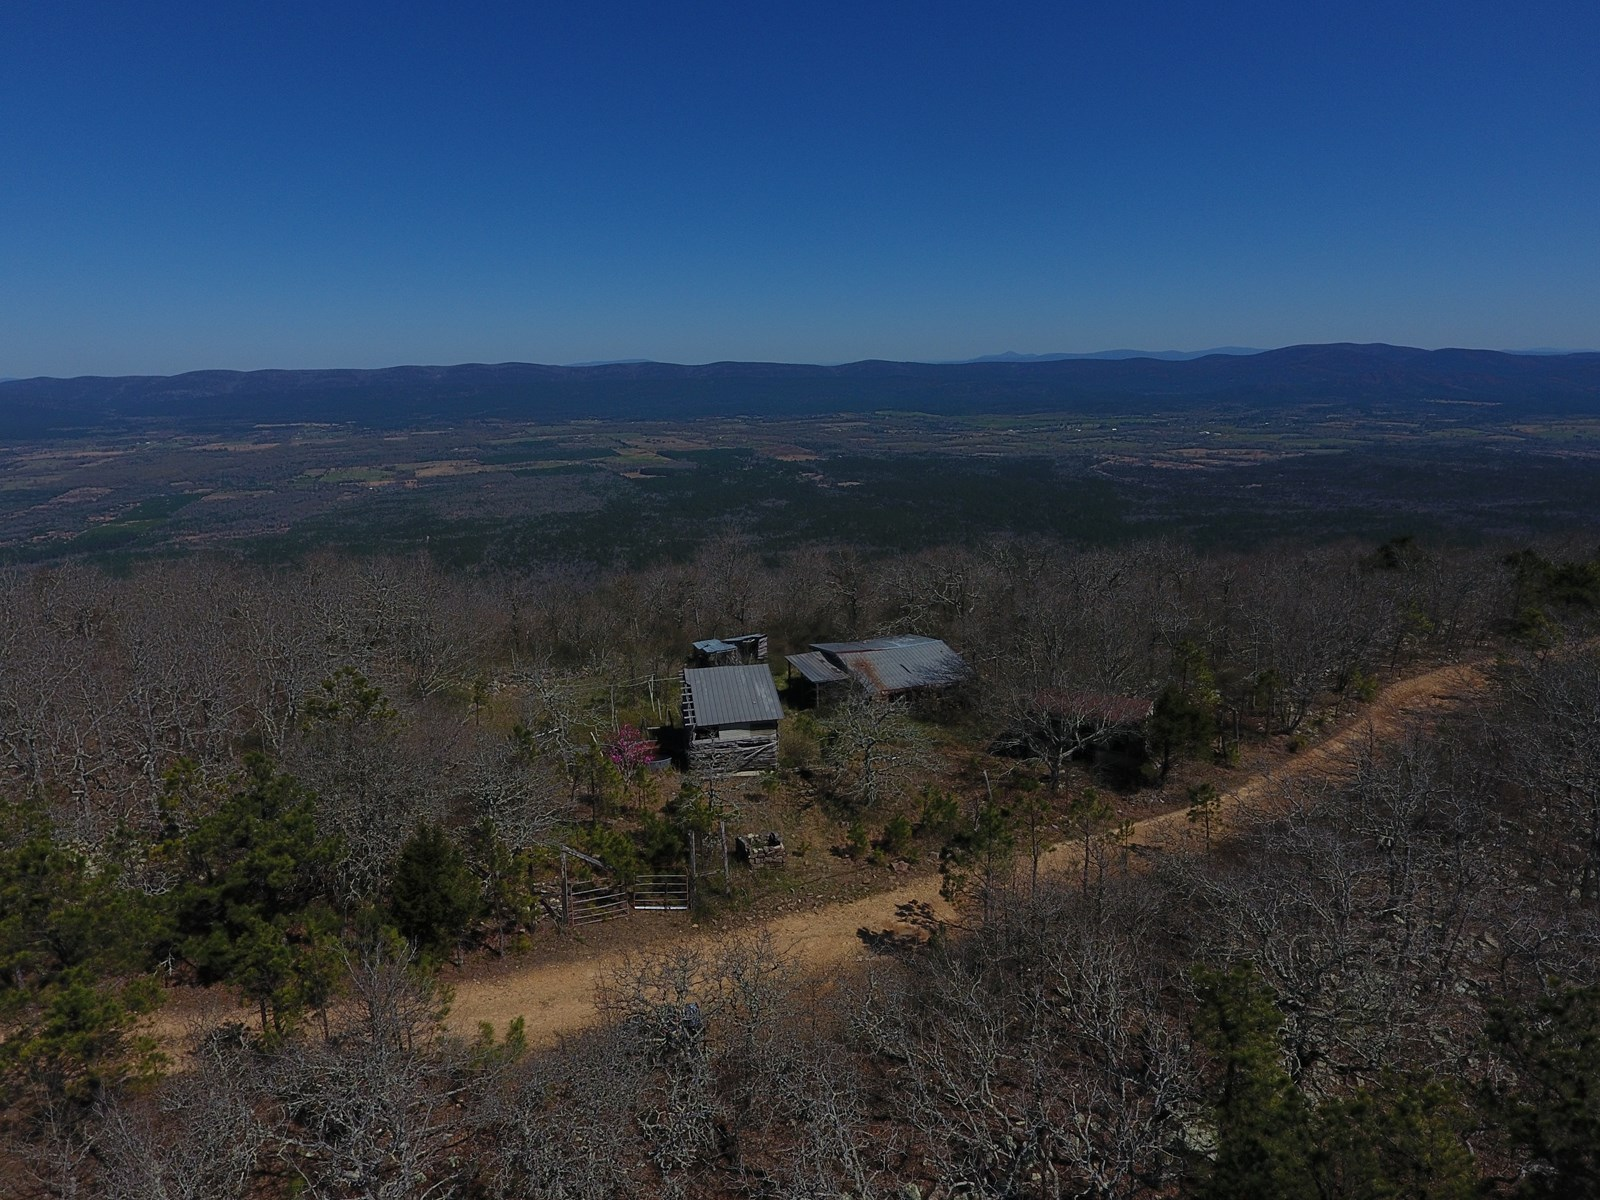 5 Acre Off-Grid Kiamichi Mountain Homestead